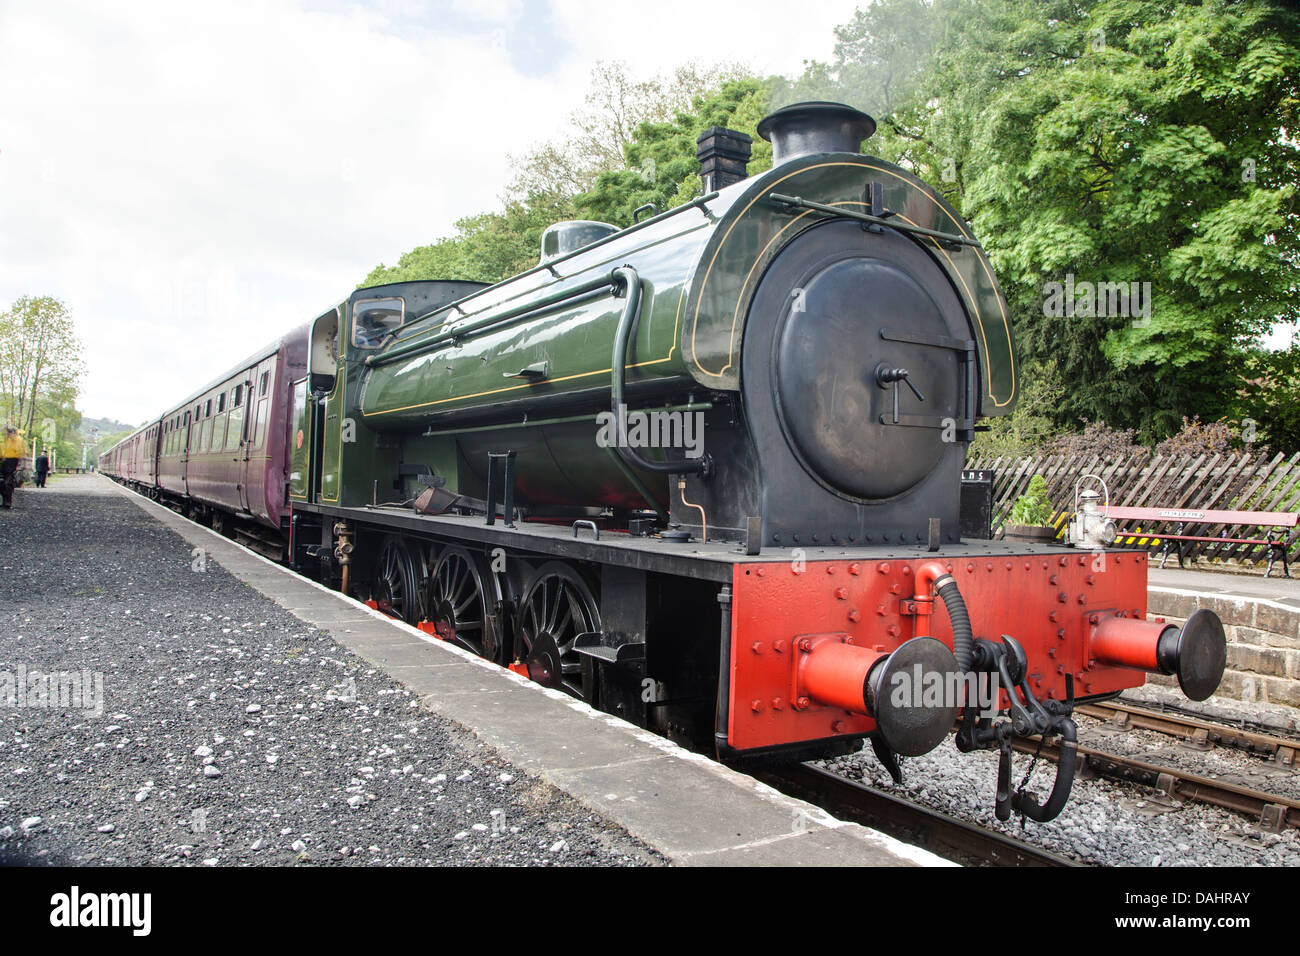 Hunslet Built 0-6-0 Saddle Tank 'Lord Phil' belonging to the Peak Rail heritage railway company. - Stock Image